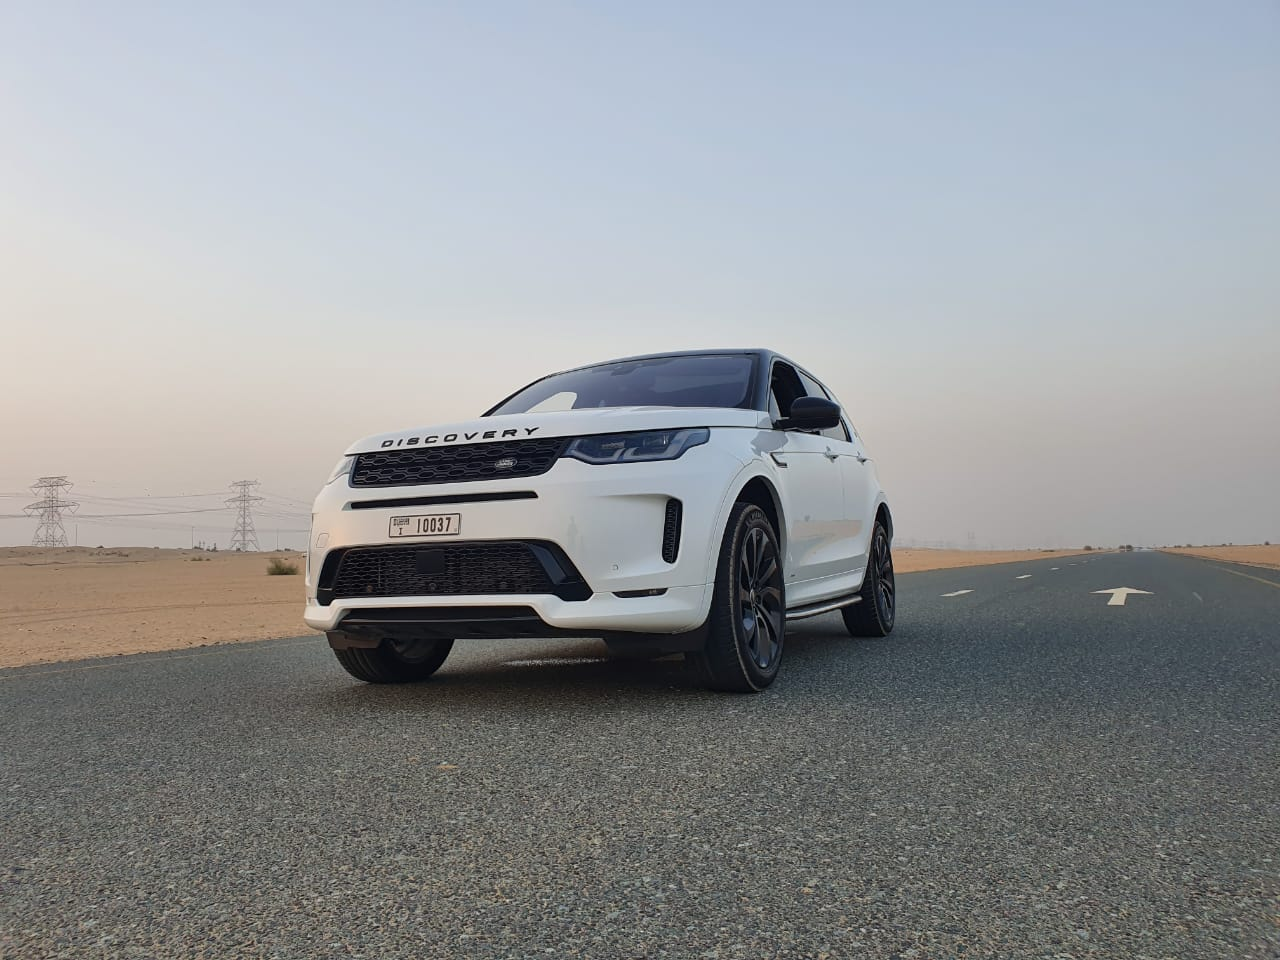 The Land Rover Discovery Sport Driven In Dubai